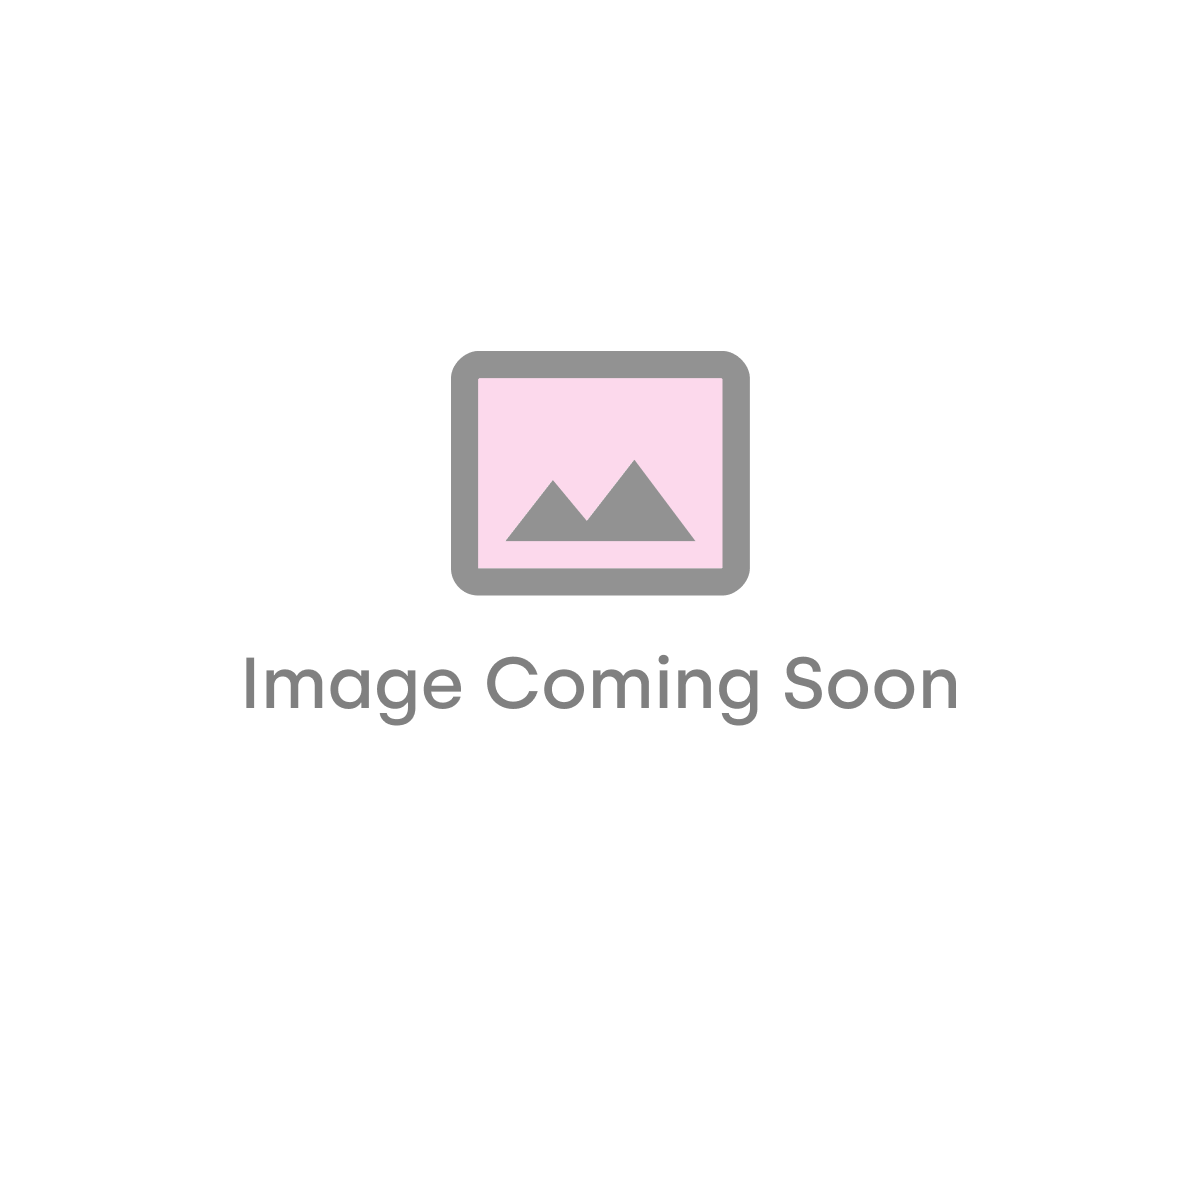 Eliseo Ricci Instant Boiling Water Kitchen Tap - Chrome - 11099